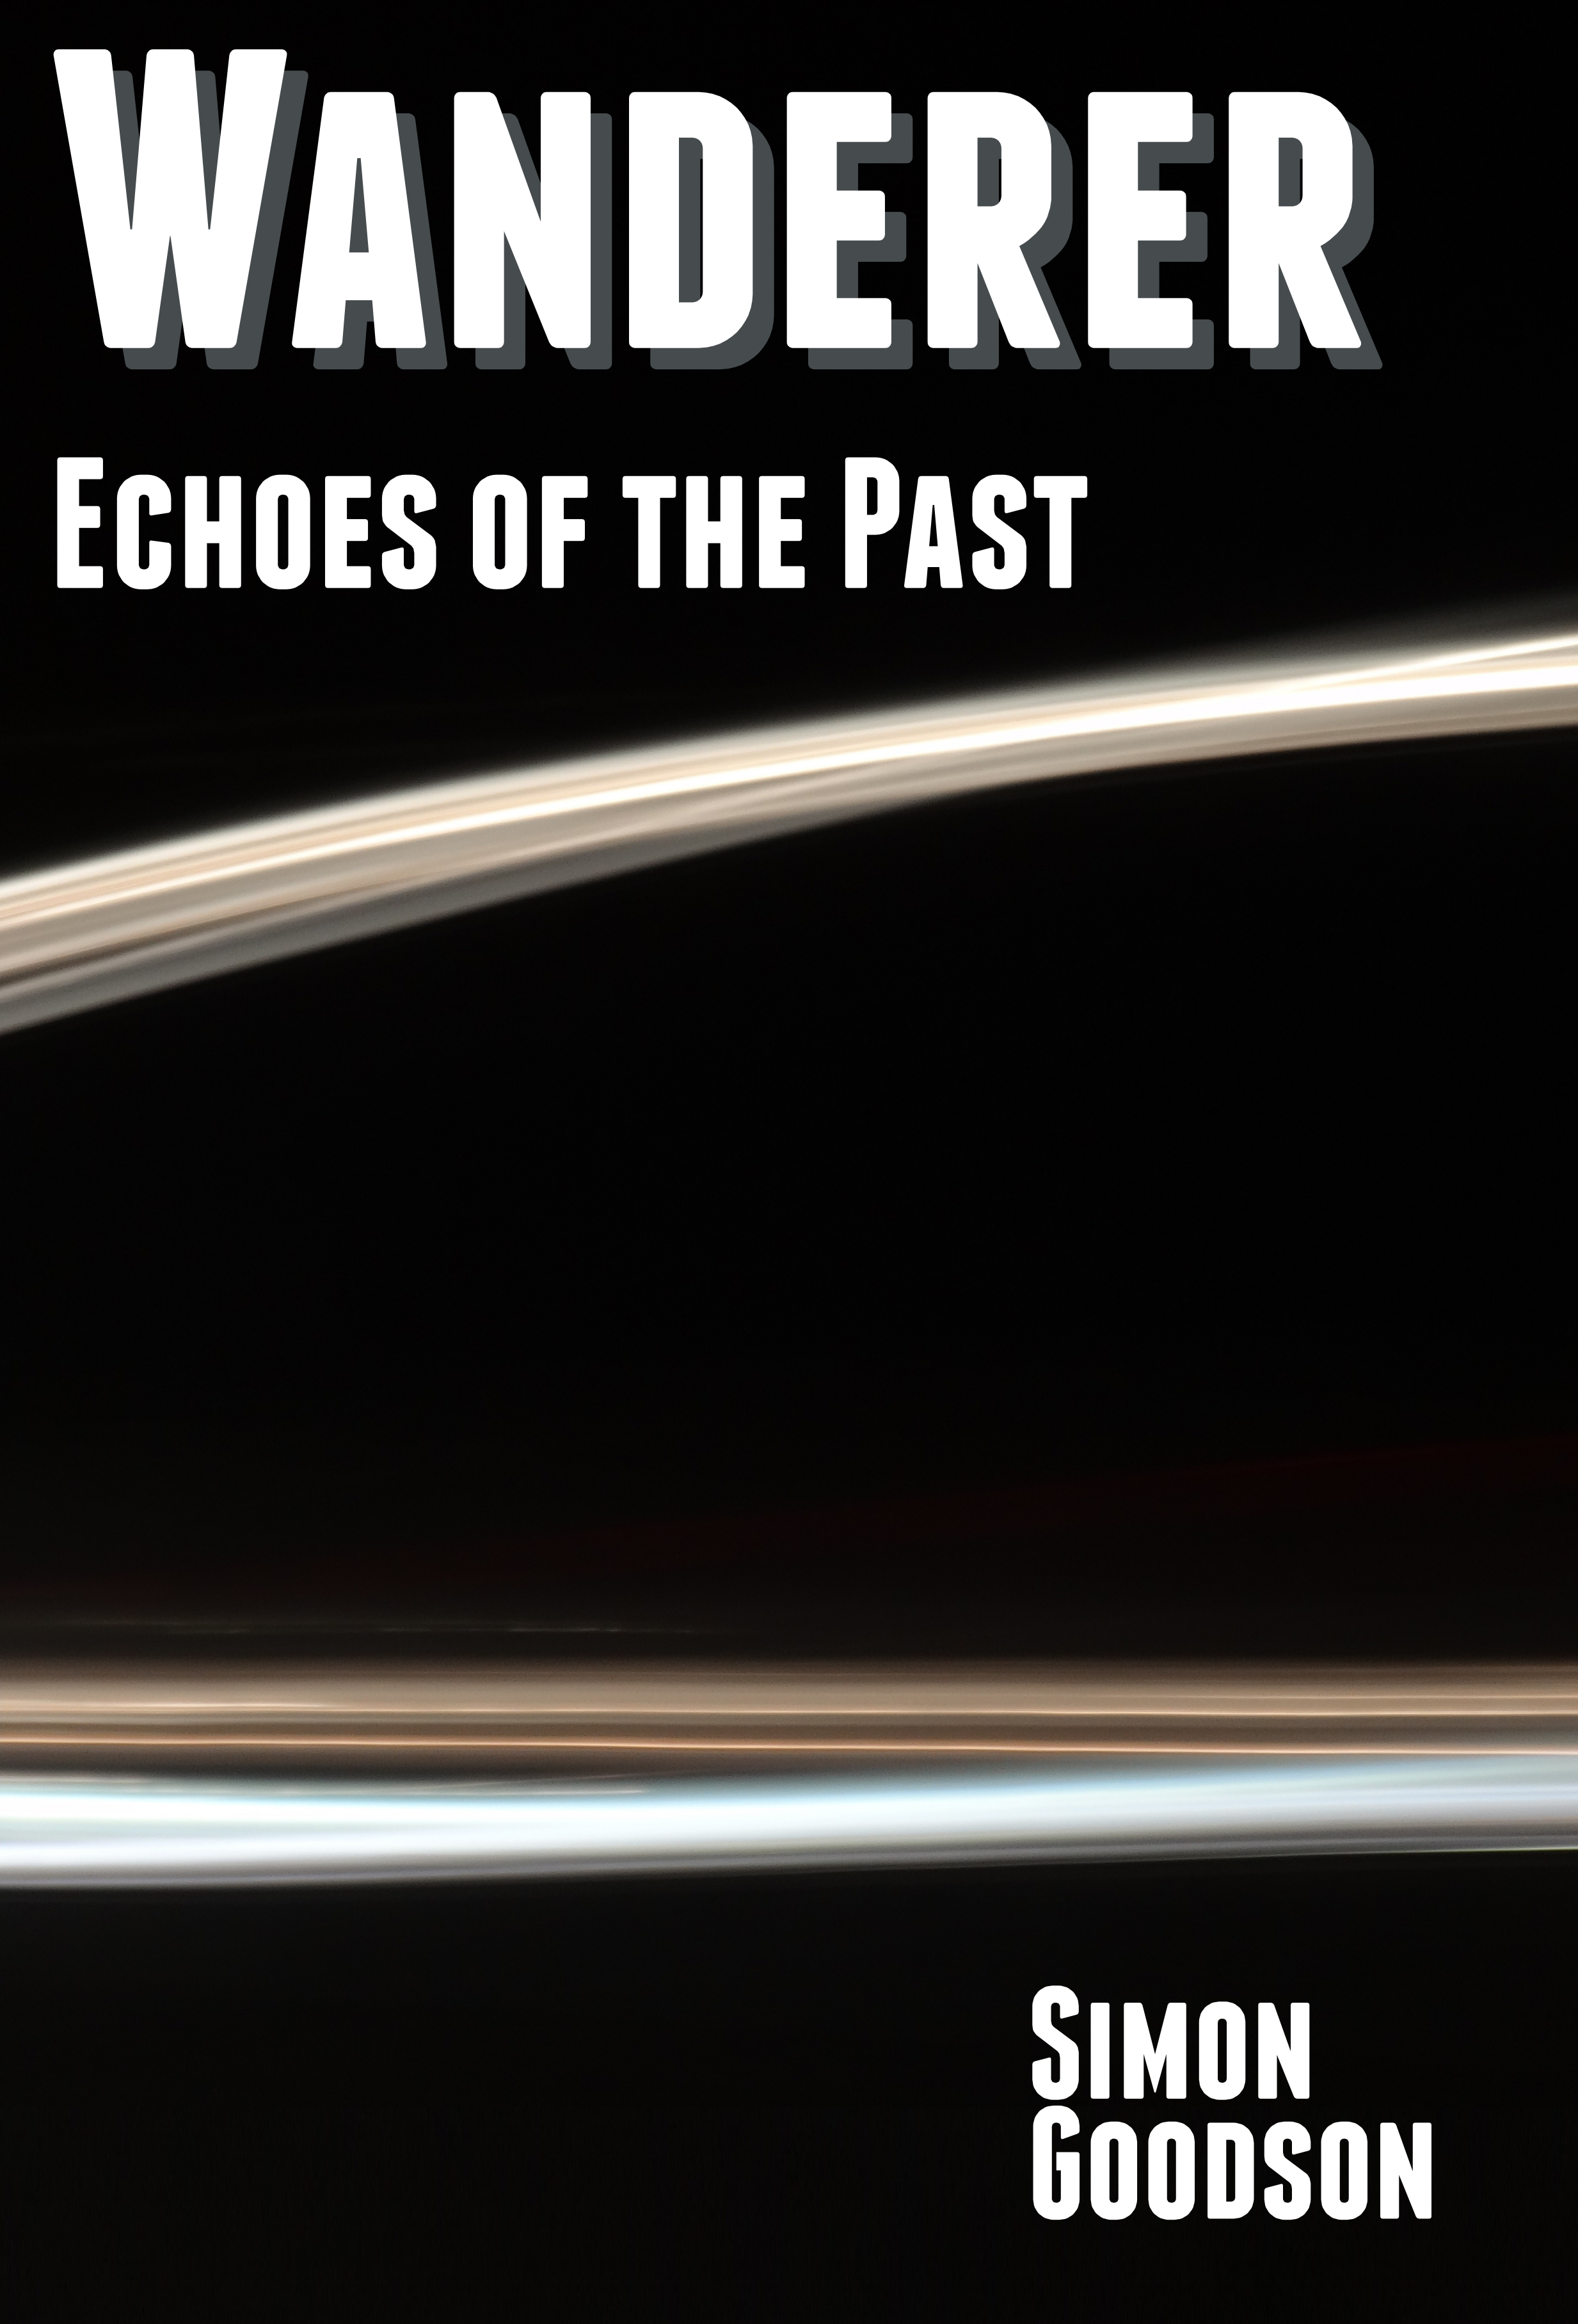 Wanderer - Echoes of the Past